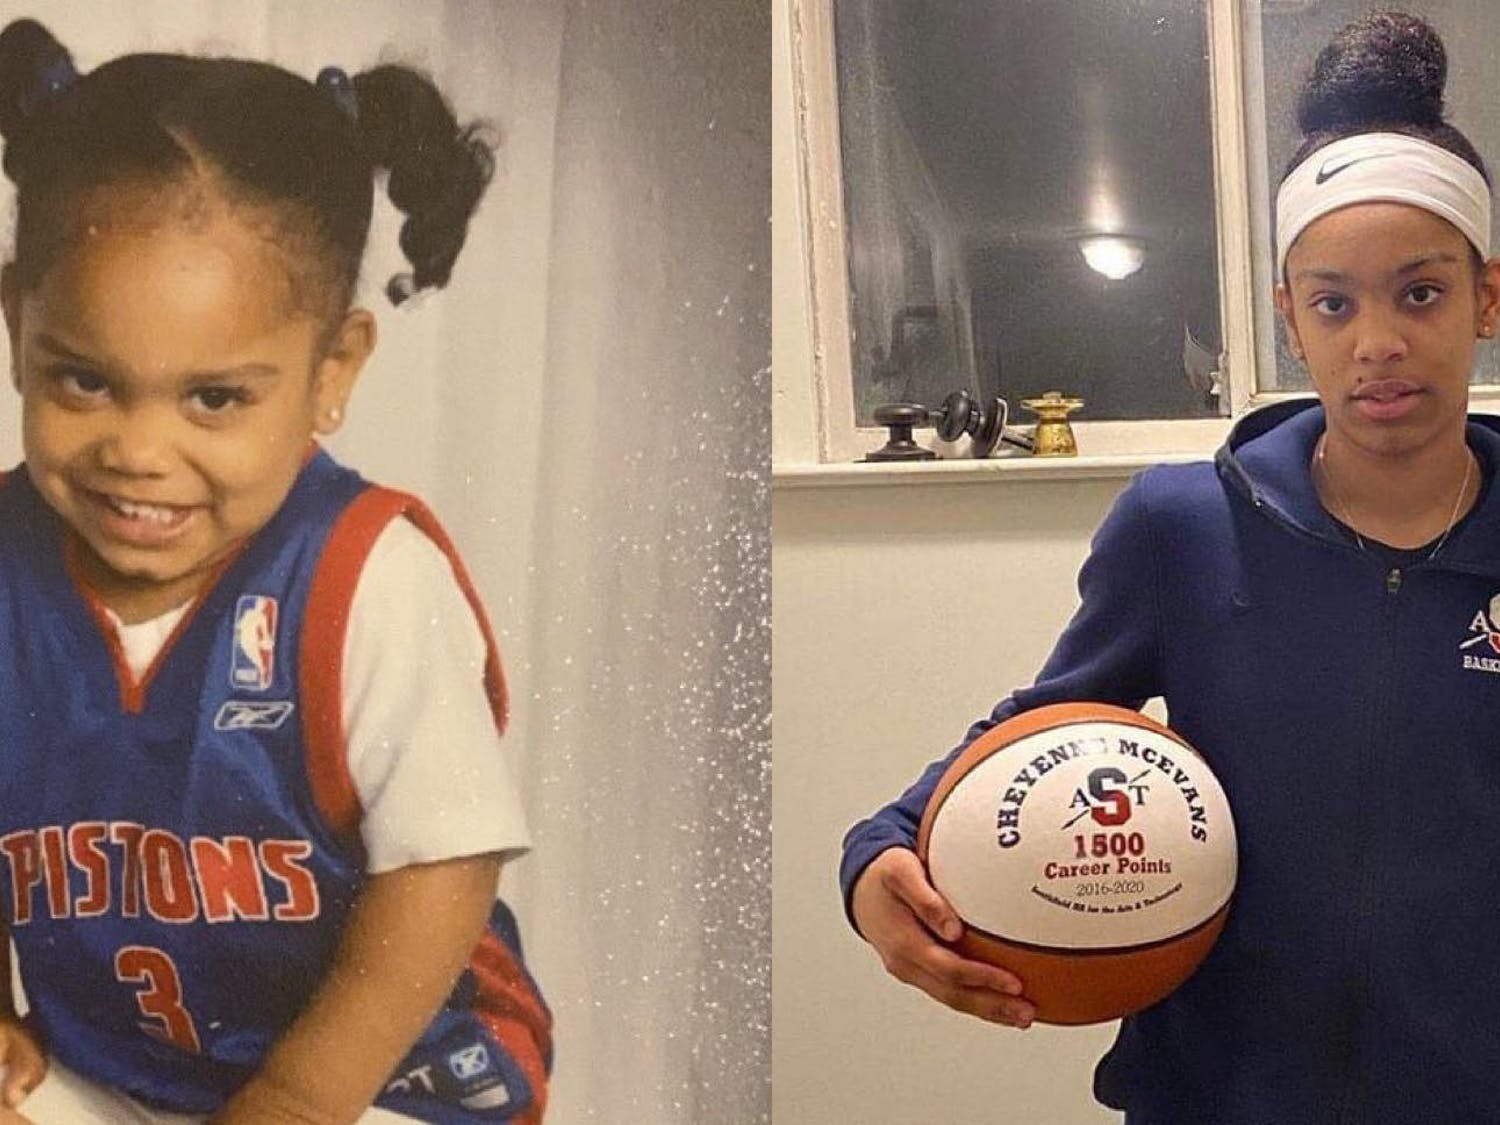 McEvans started playing basketball at age five, but she has had to overcome adversity to get to where she is today.